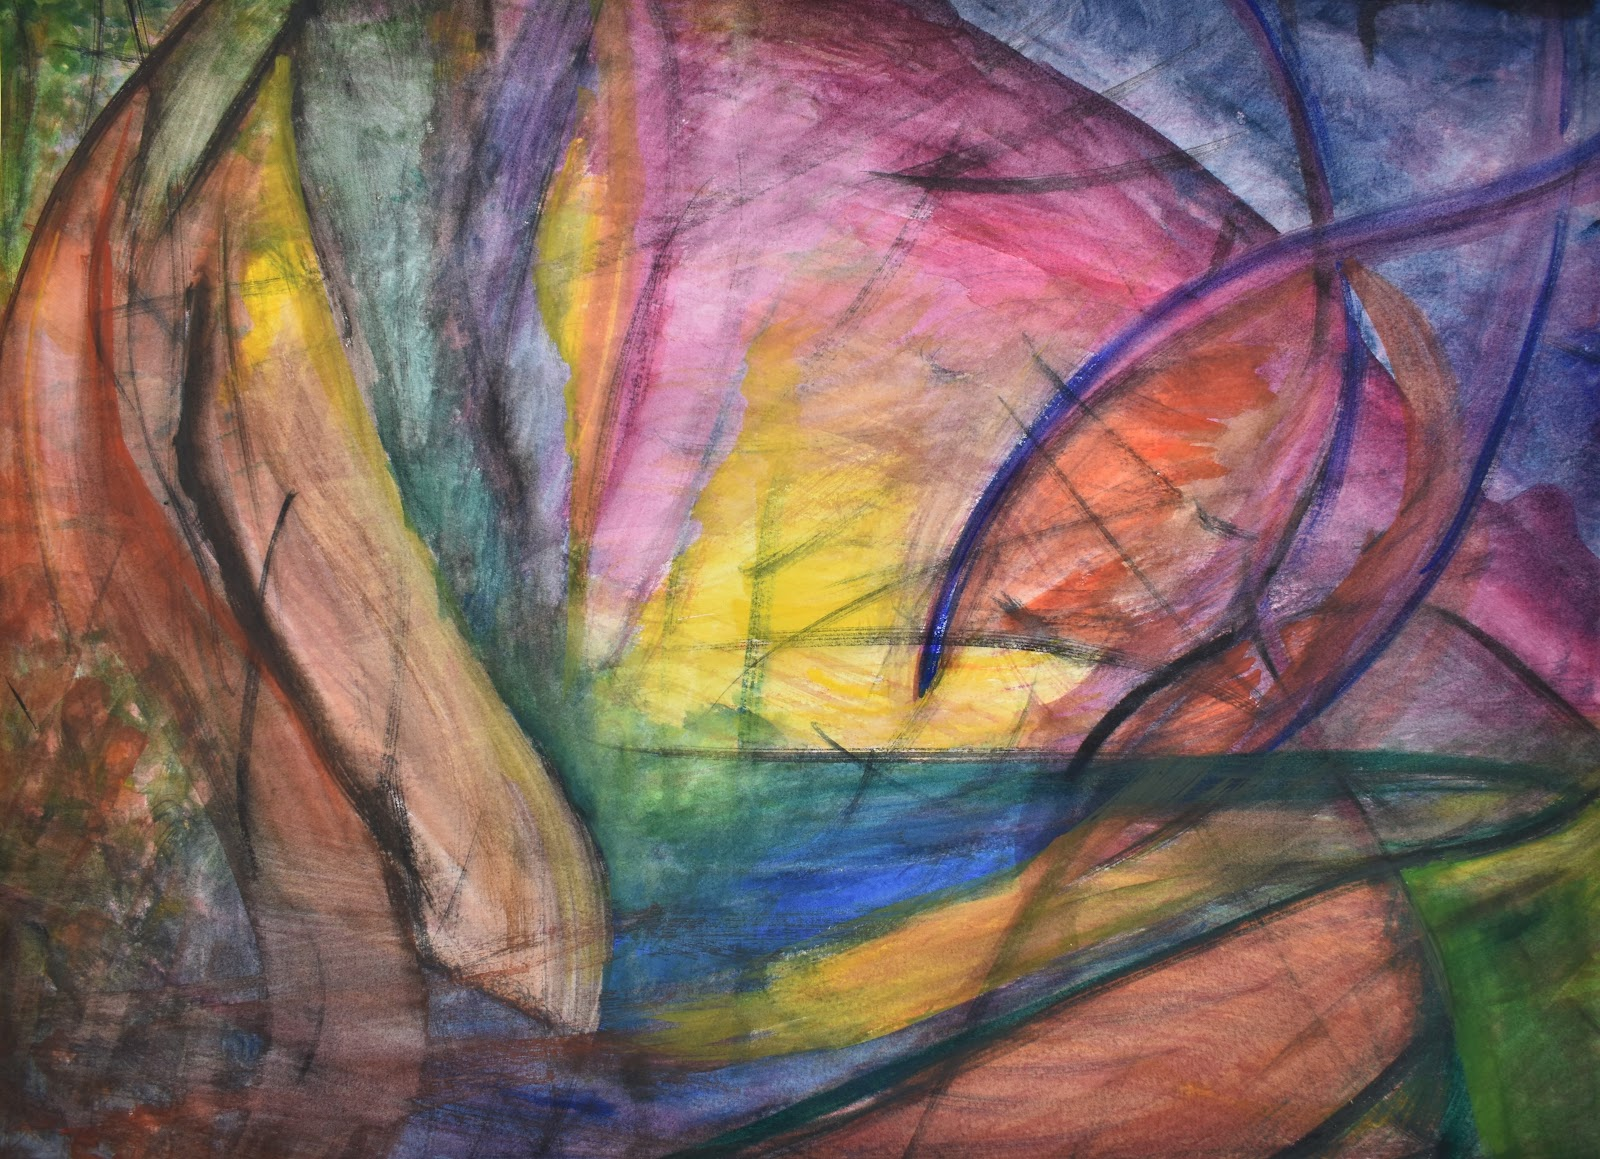 abstract painting with curved lines and areas of various colors